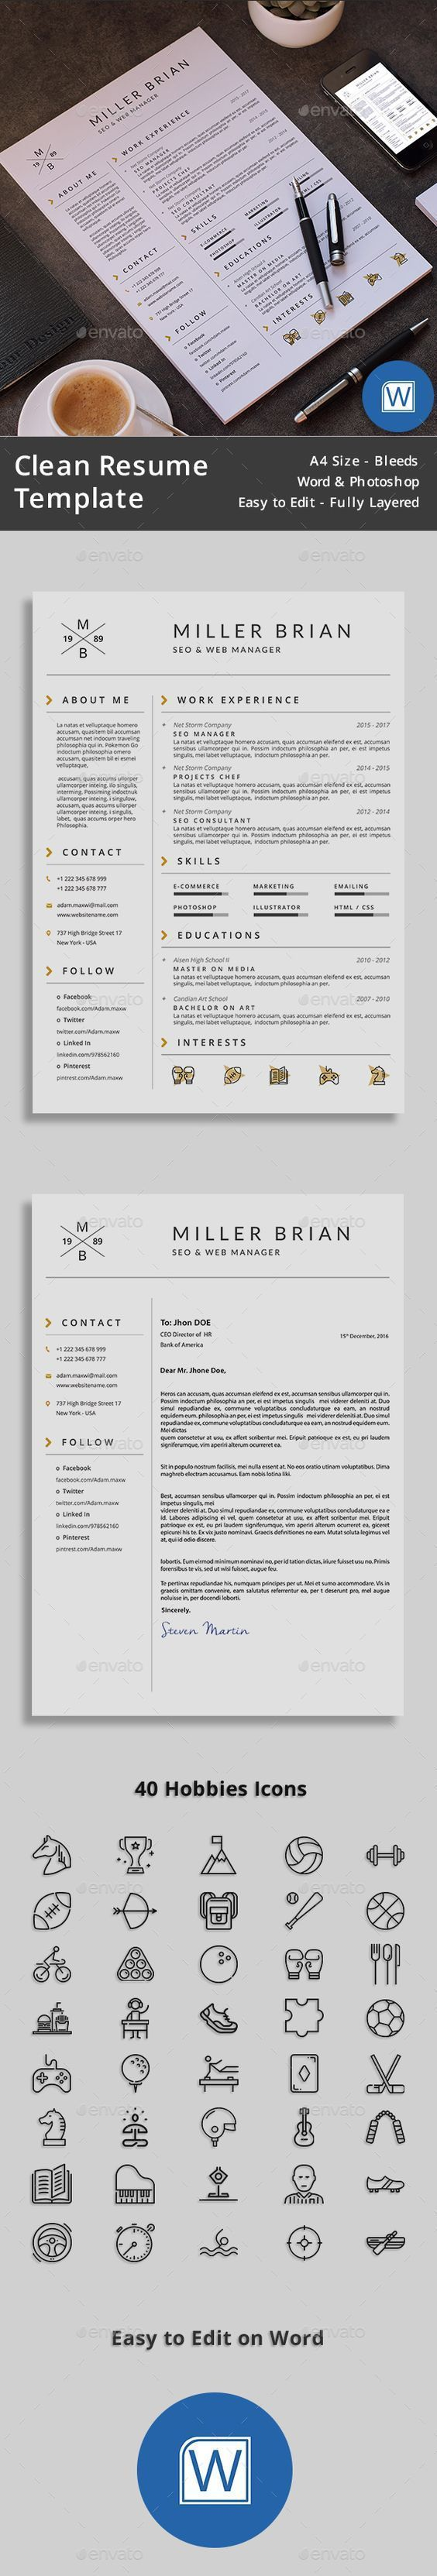 Functional Resume Template Microsoft%0A Professional  u     Modern Resume Template for MS Word   CV Template for word   Resume  template for word       Editable   Instant Digital Download